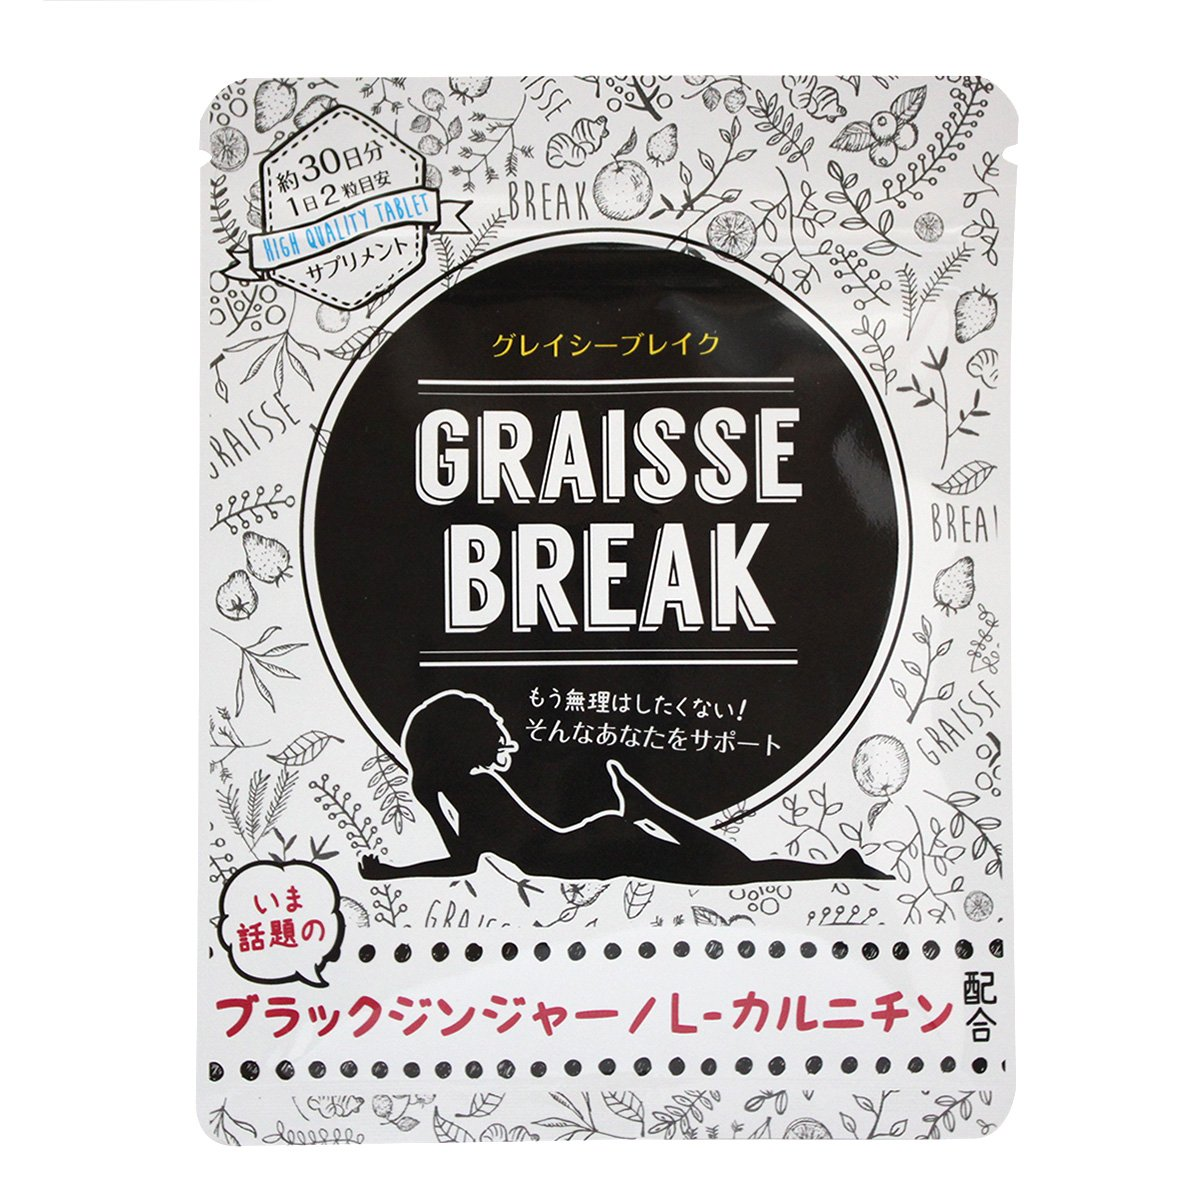 Japanese Popular Diet Supplement Graisse Break 30days(60tablets) by Graisse Break (Image #1)